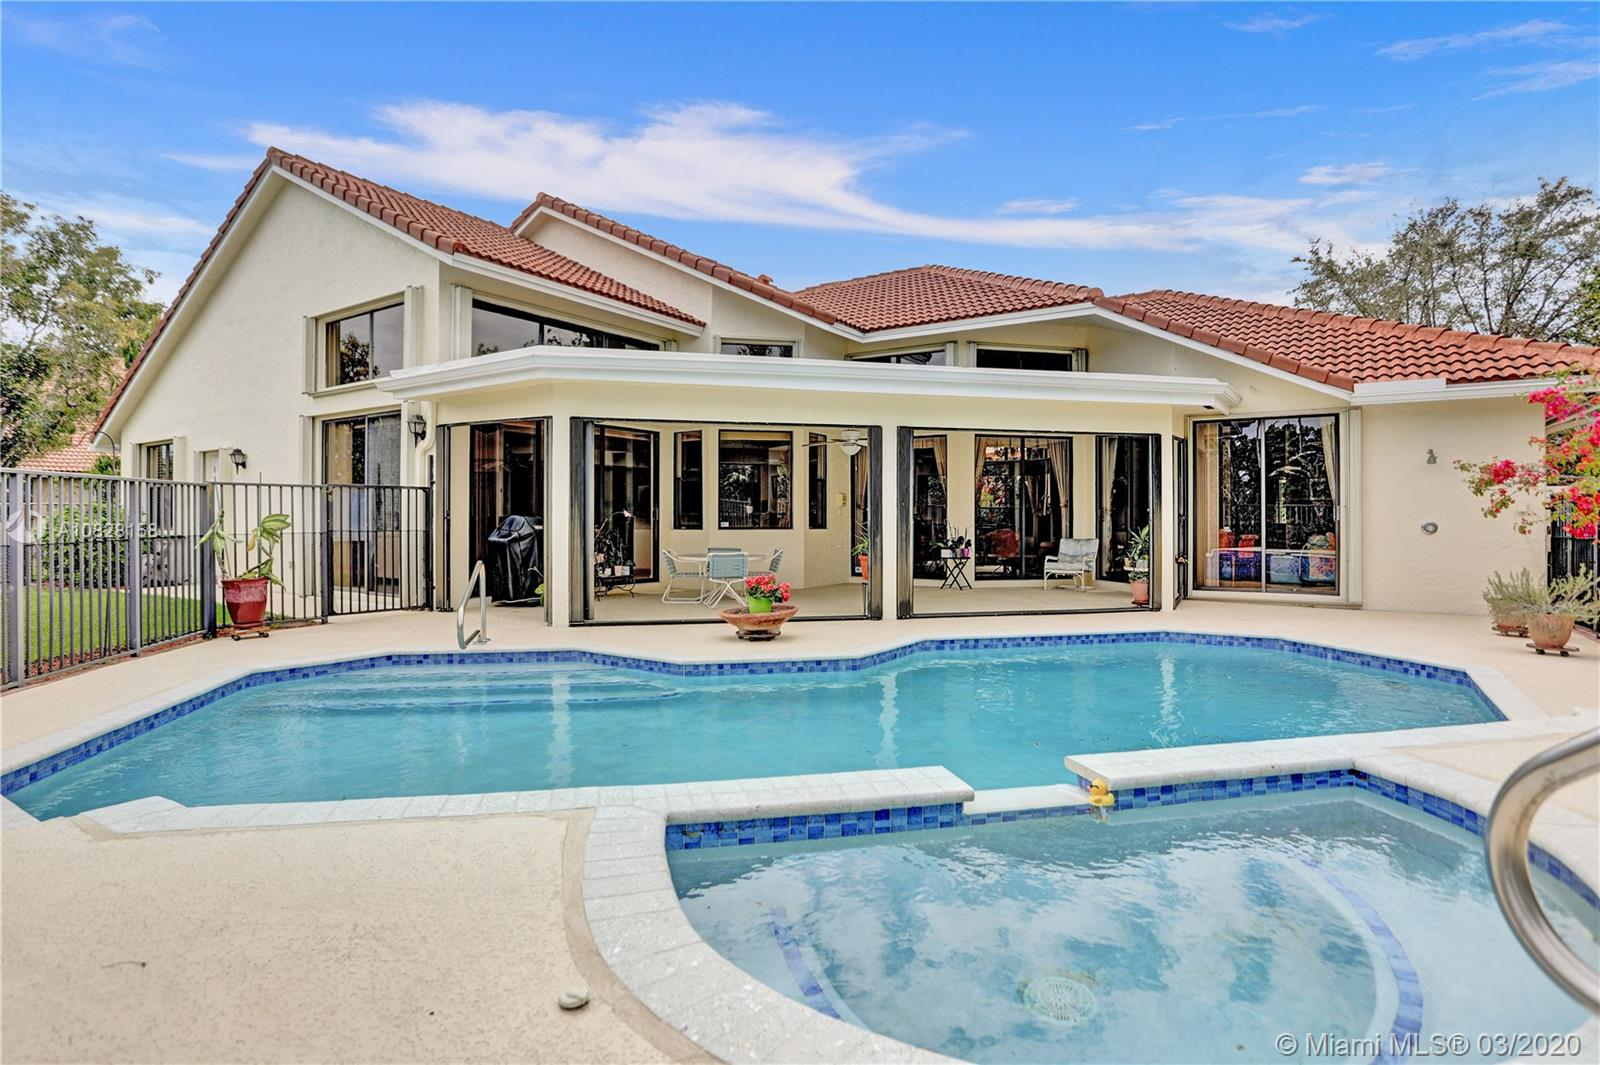 This meticulously maintained home with a gorgeous lake view is located in the esteemed guard-gated community of Palm Island. The high vaulted ceilings and large windows let the right amount of natural light enter throughout the home. The perfectly laid out split floor plan allows for a pool and lake view from the master suite and all entertaining areas. The large kitchen dawning granite countertops opens to the family room. The covered patio and enormous deck overlooking the heated pool, jacuzzi and panoramic lake views across from lush greenery is ideal for outside entertainment. Circular driveway w/ new impact doors on 3 car garage, accordion shutters throughout, NEW Roof in 2017, exterior and interior repainted in 2018. Great location, walking distance to A+ schools, parks and shopping.